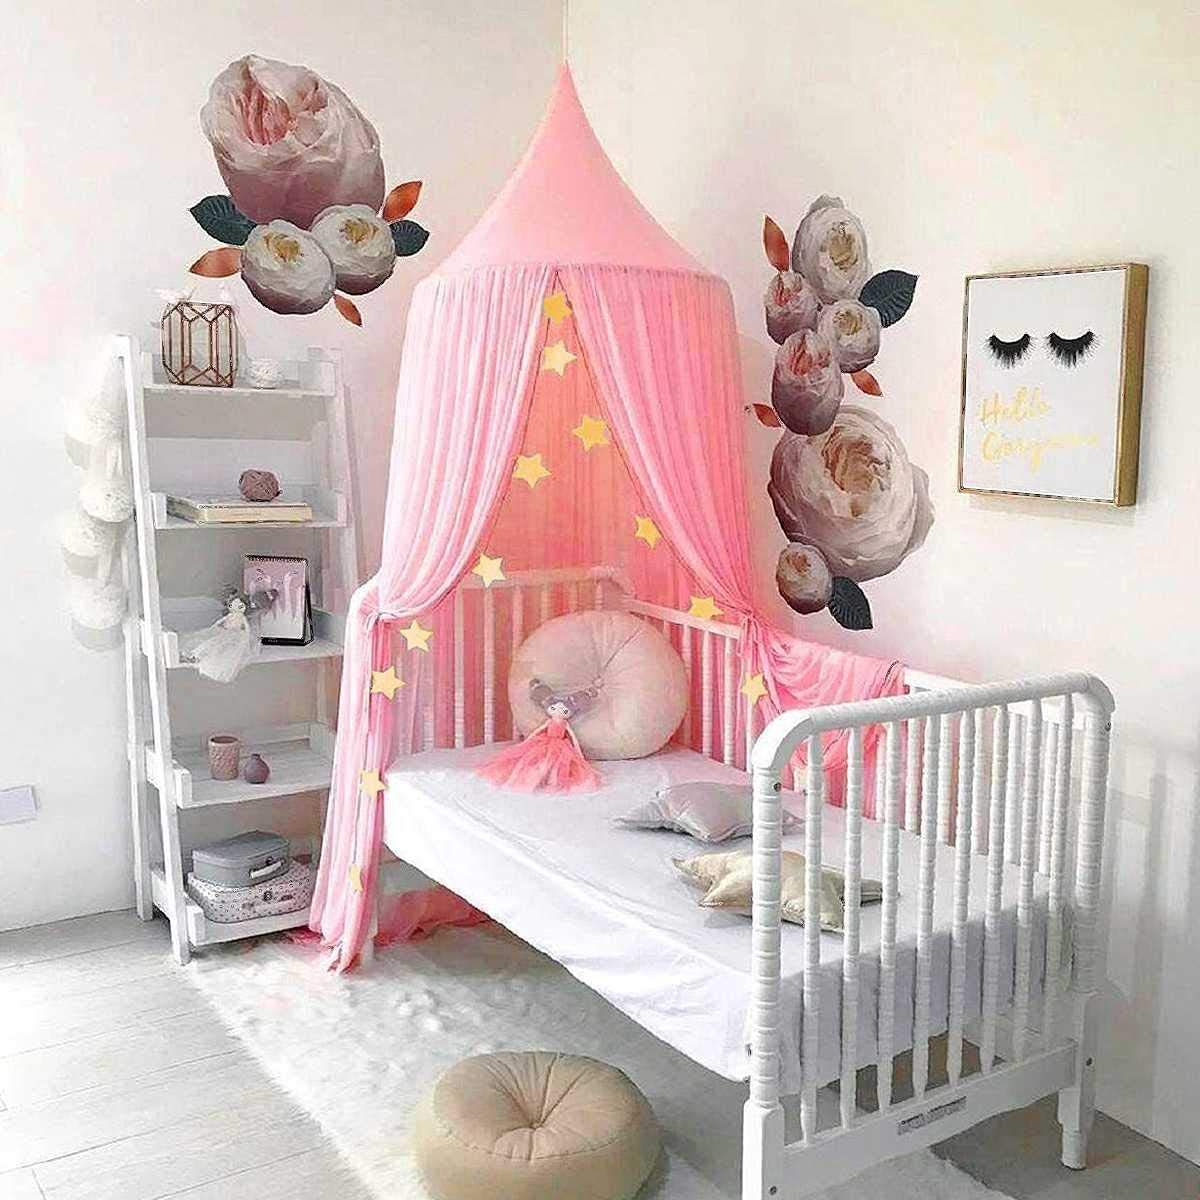 Bed Canopy for Kids Baby Bed Round Dome Kids Indoor Outdoor Castle Play Tent Hanging House Decoration Reading Nook Cotton Canvas Coral-3 Colors Pink